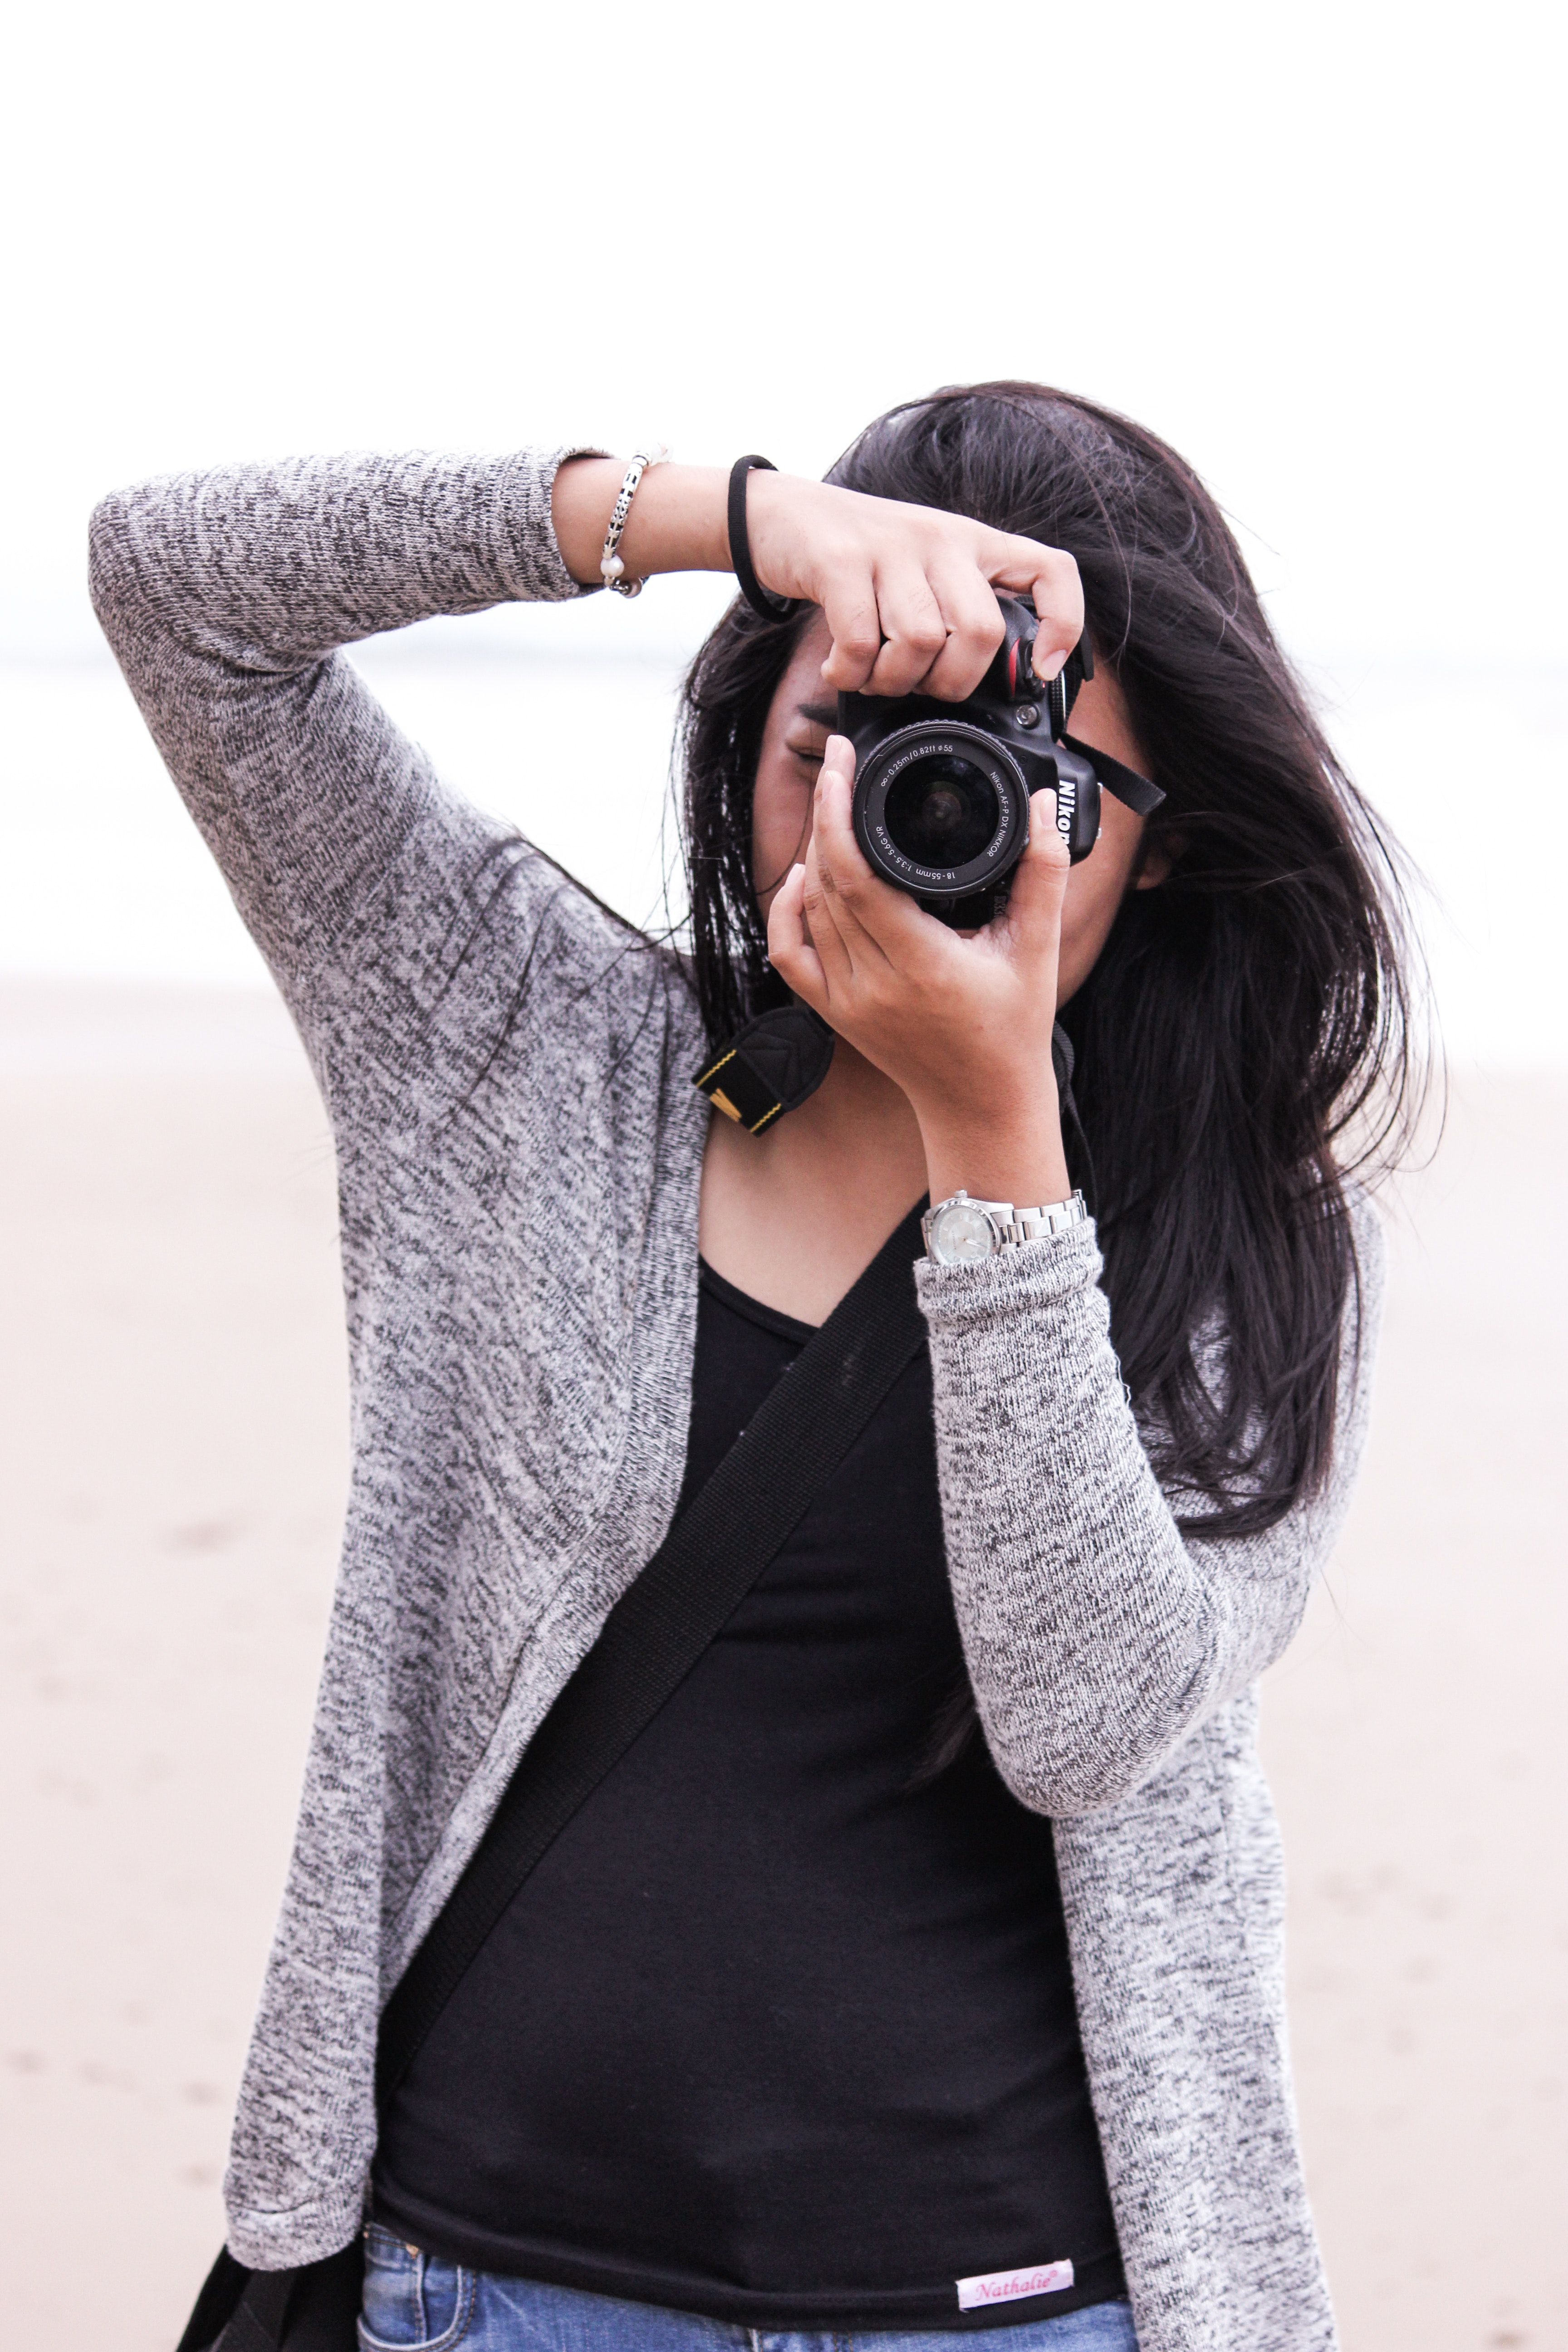 Woman in gray cardigan and black shirt holding black dslr camera photo